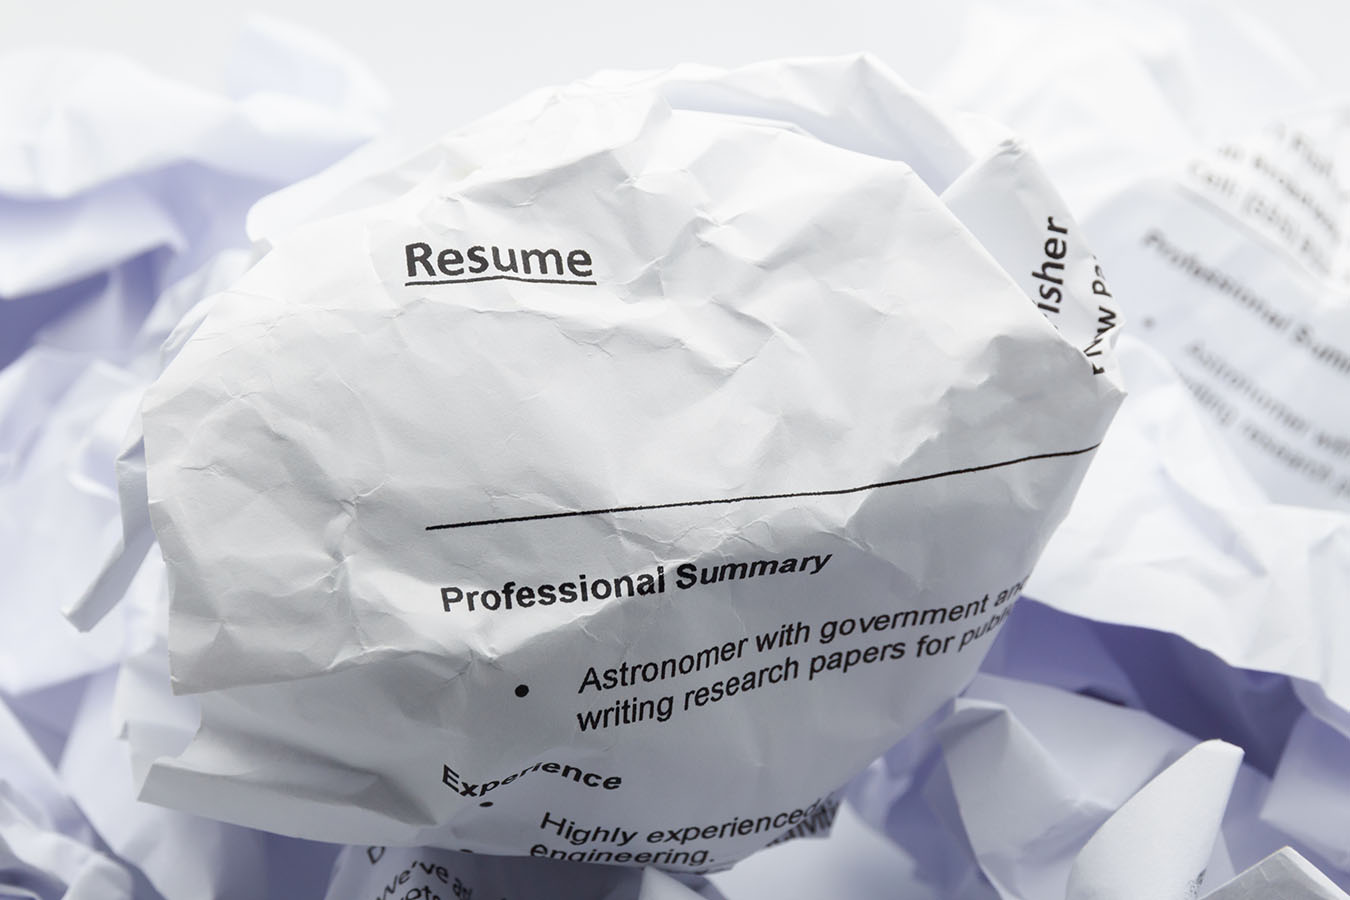 These 10 boneheaded resume mistakes guarantee applicants won't get hired